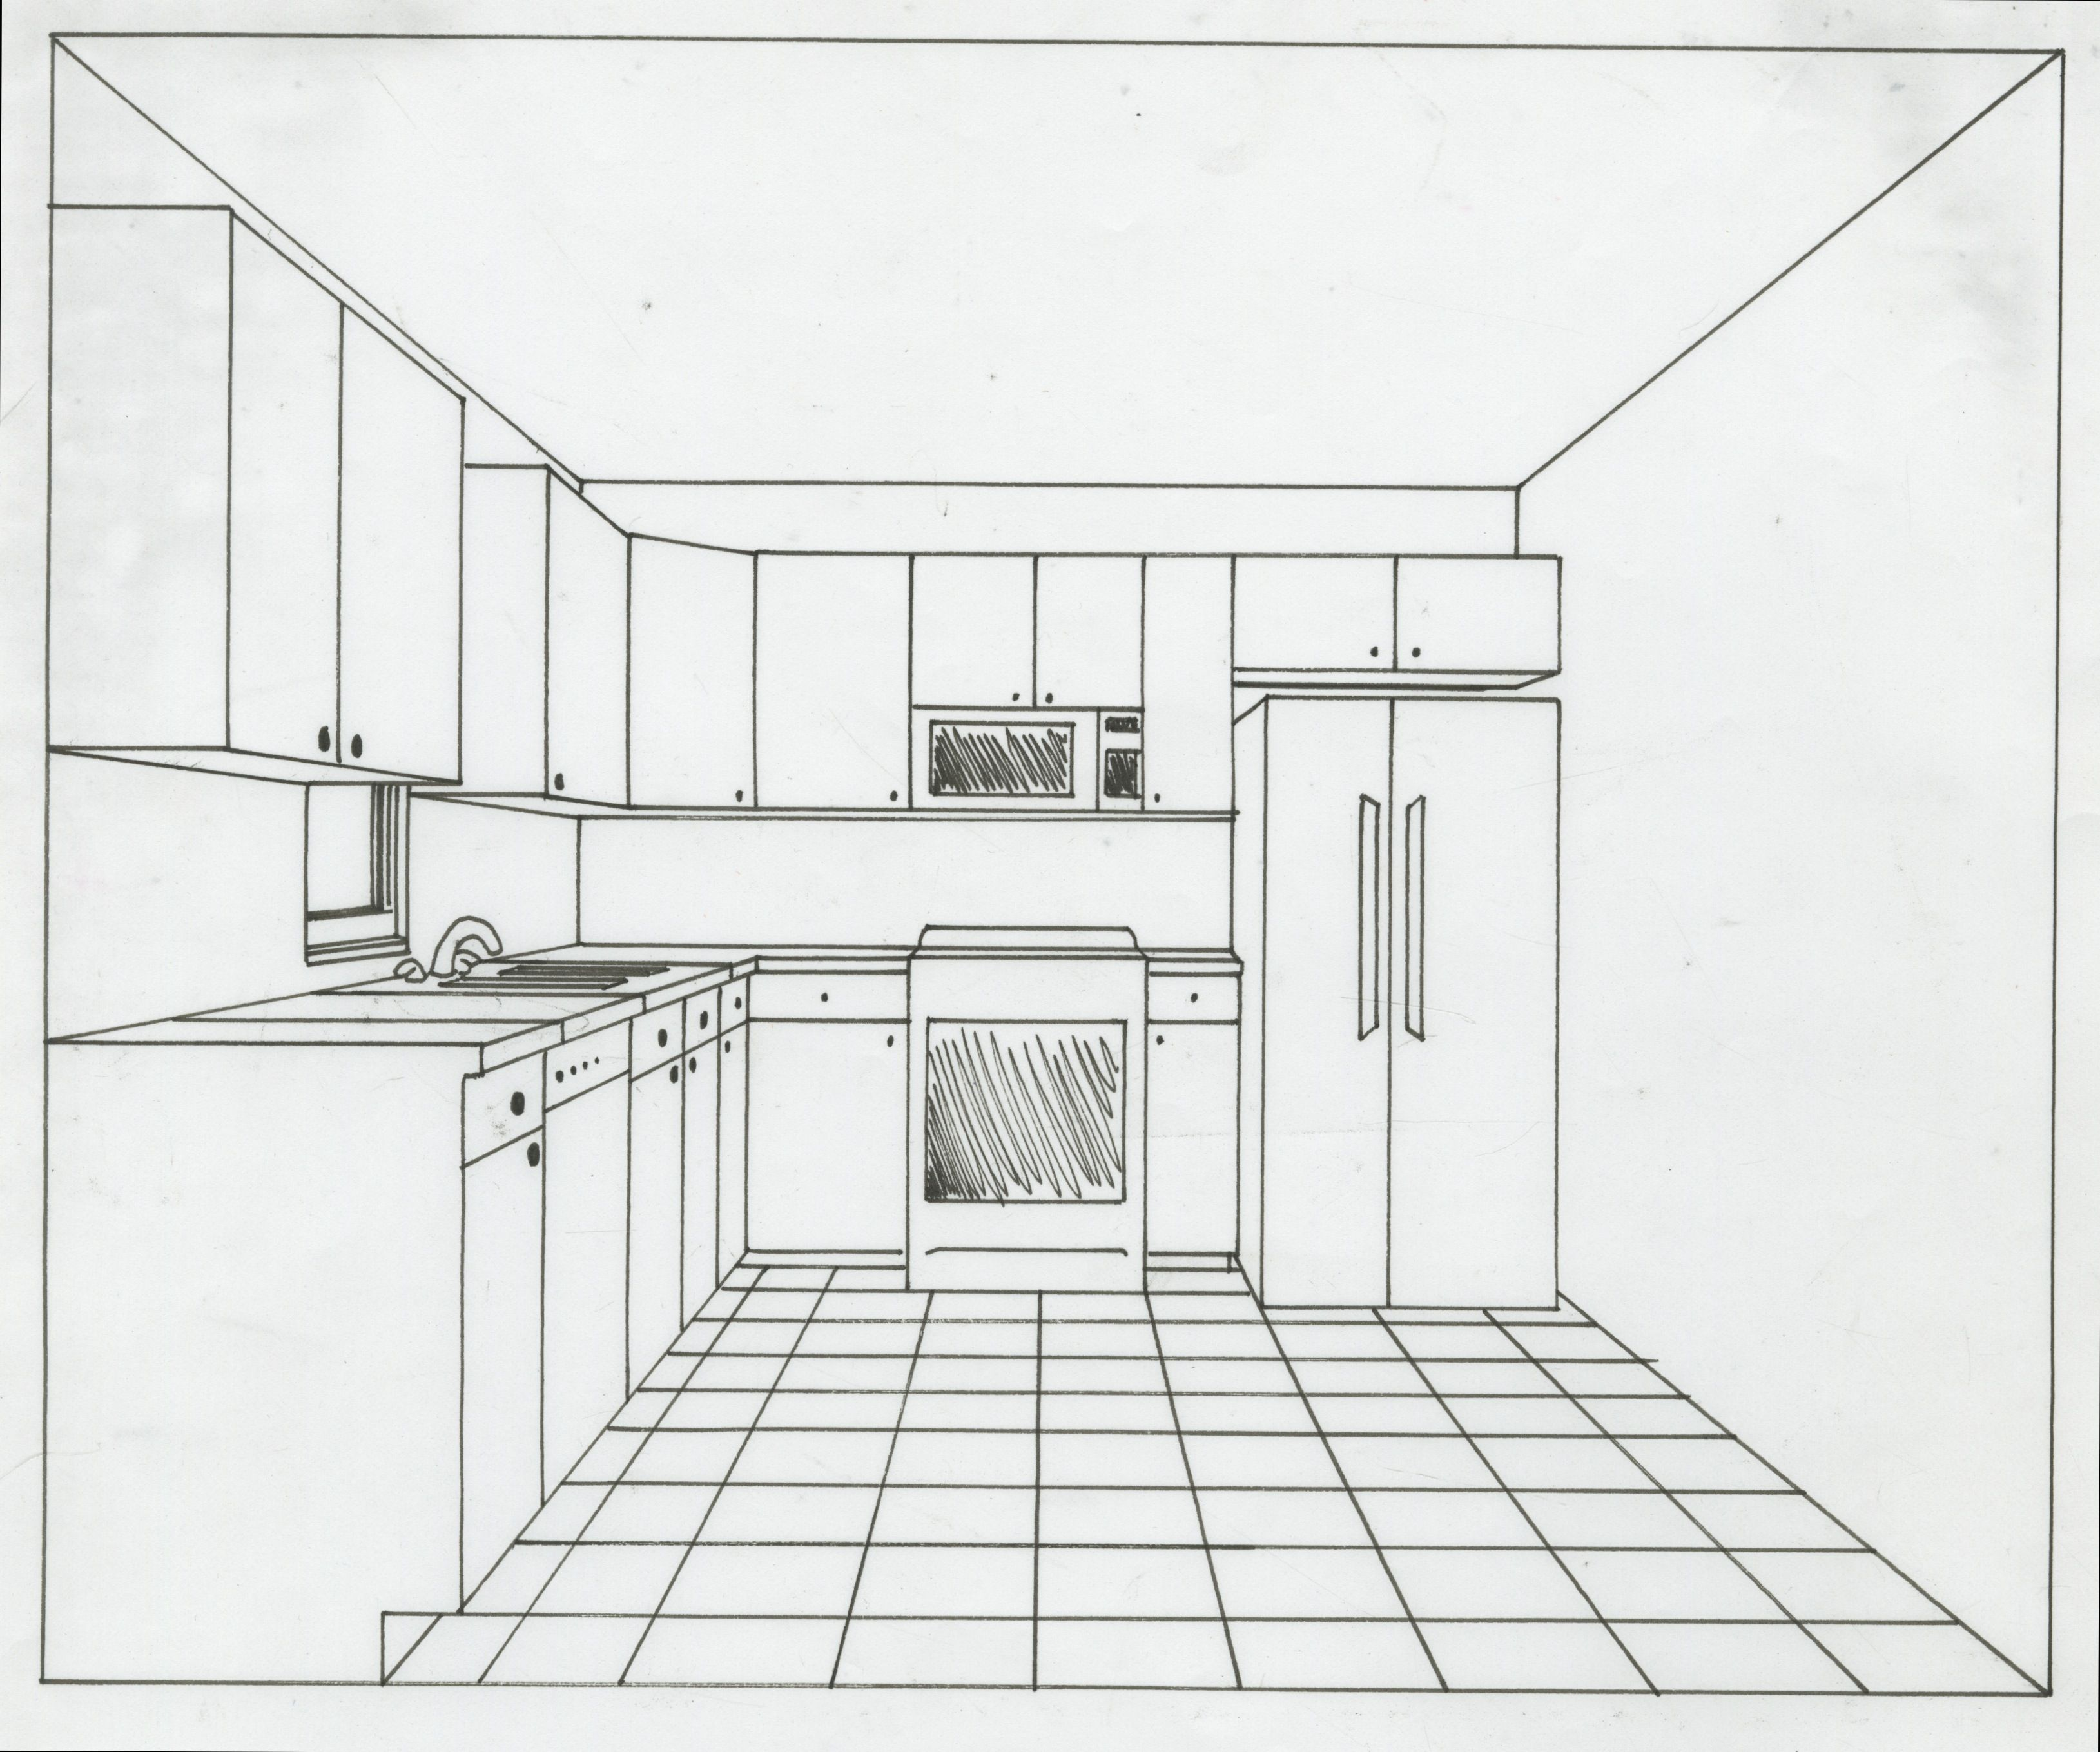 Pin By Sehrish Aas On Sketches Interior Design Sketchbook 1 Point Perspective Point Perspective